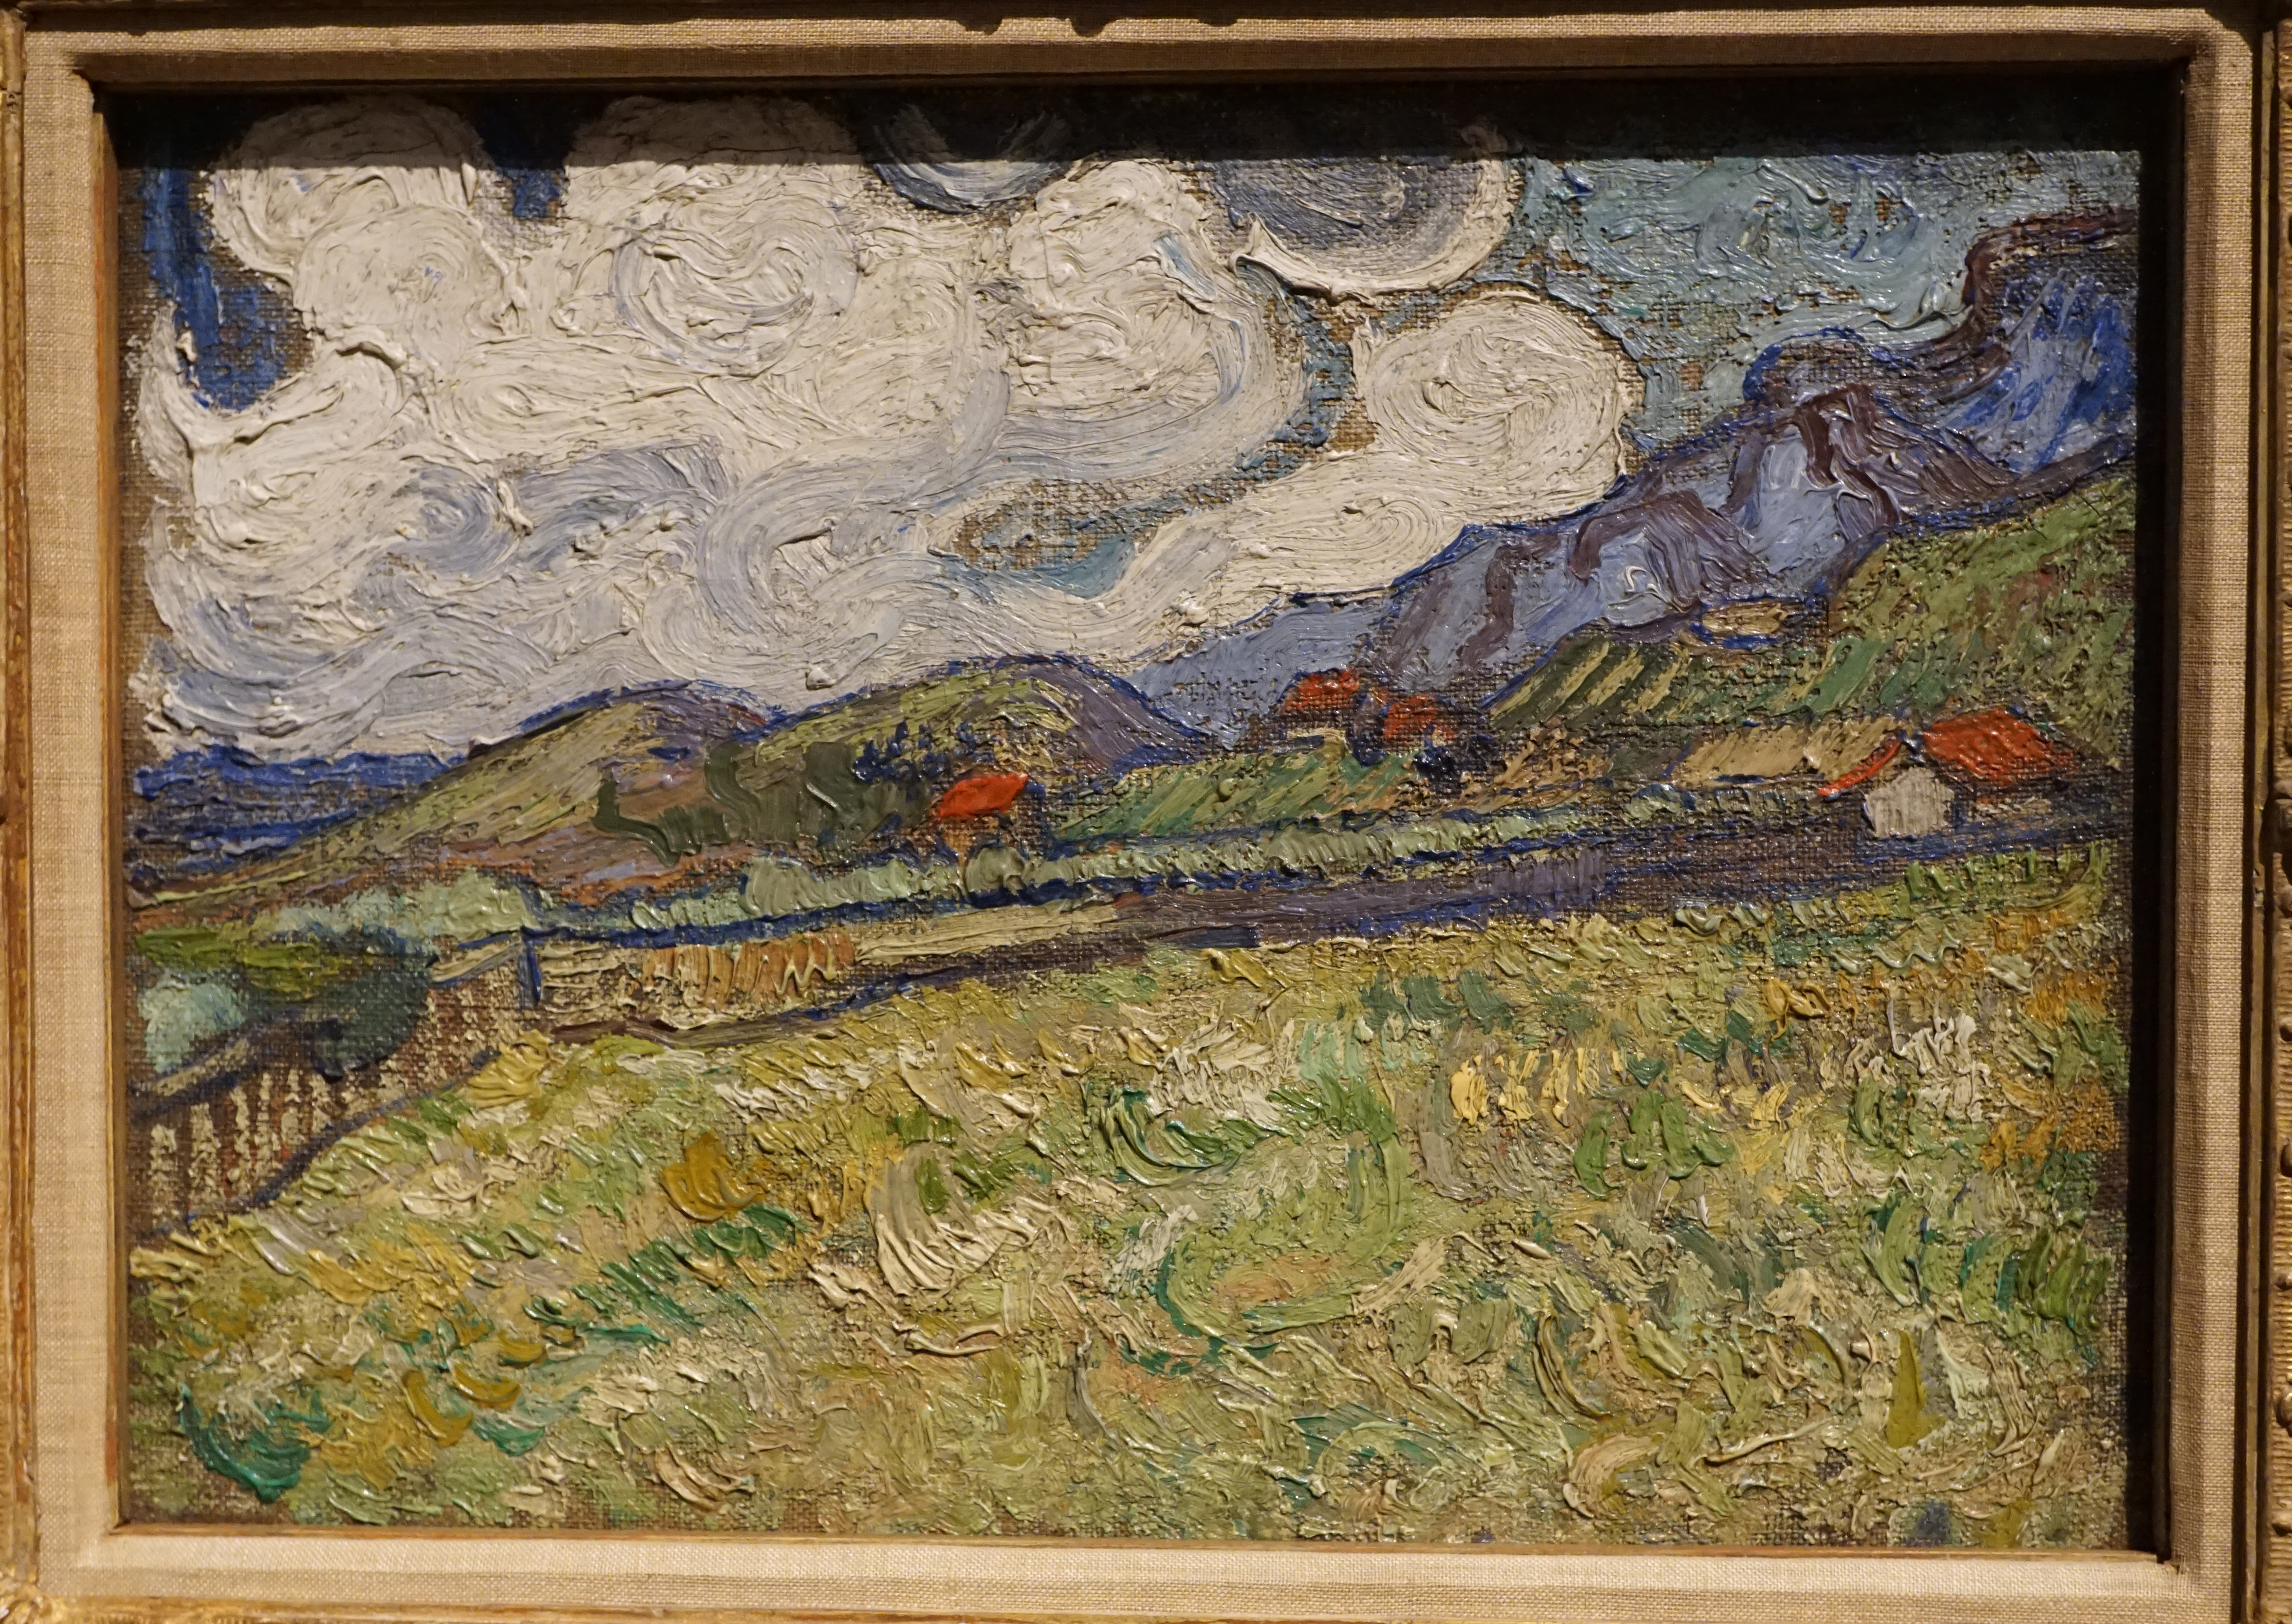 wheat-field-behind-st-pauls-hospital-vincent-van-gogh-1889-image-3